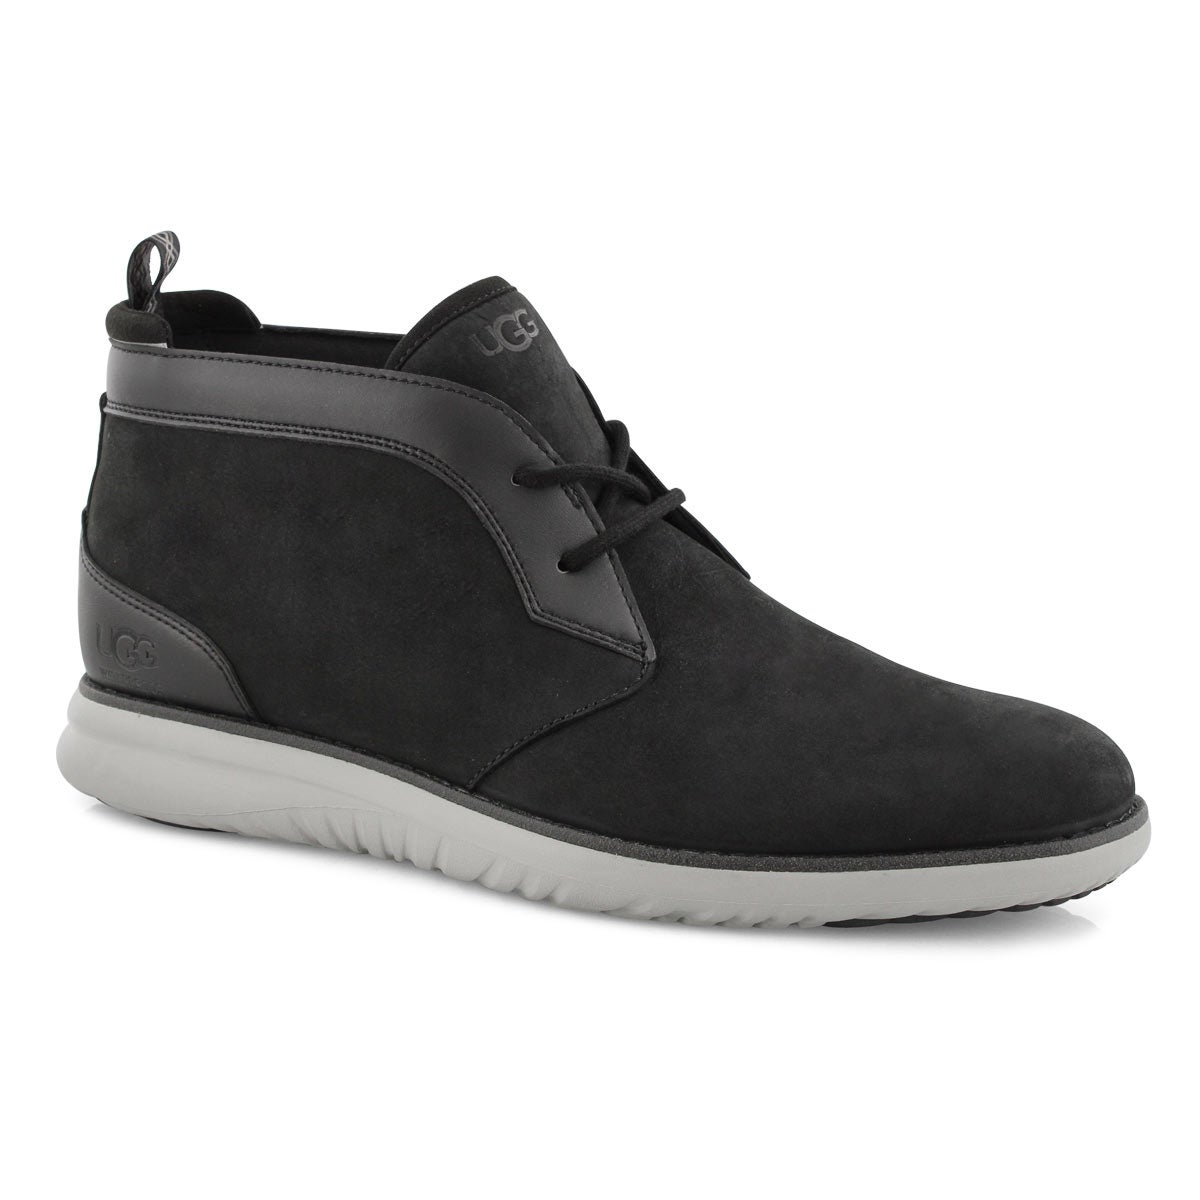 Mns Union black wtpf chukka boot